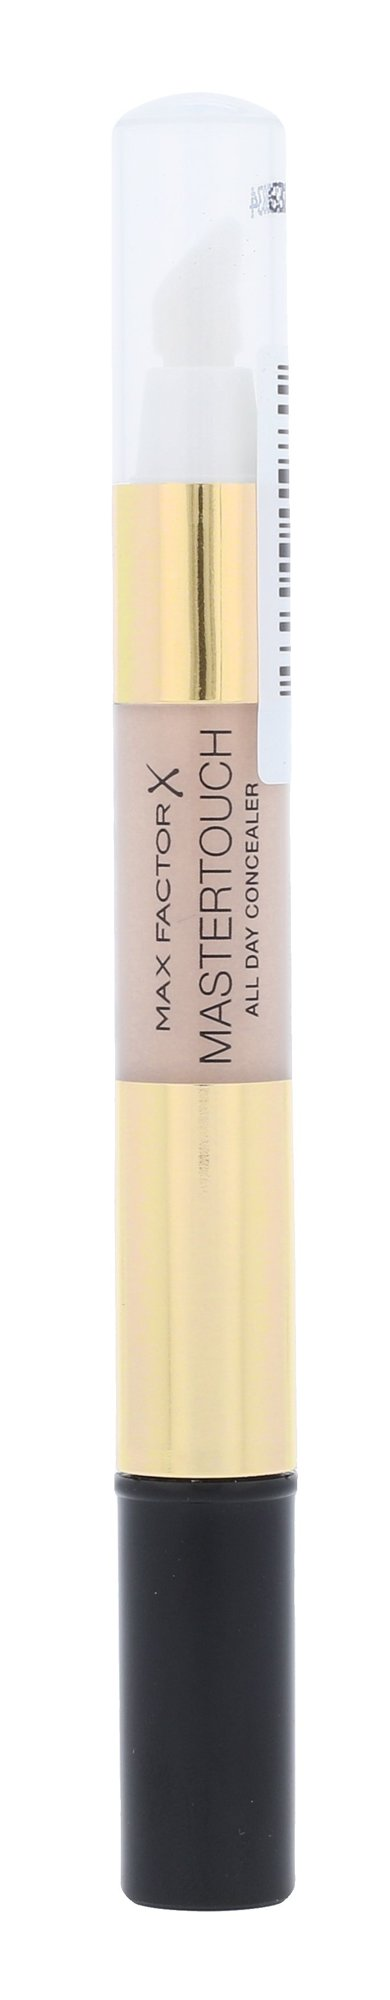 Max Factor Mastertouch Cosmetic 1,5ml 306 Fair